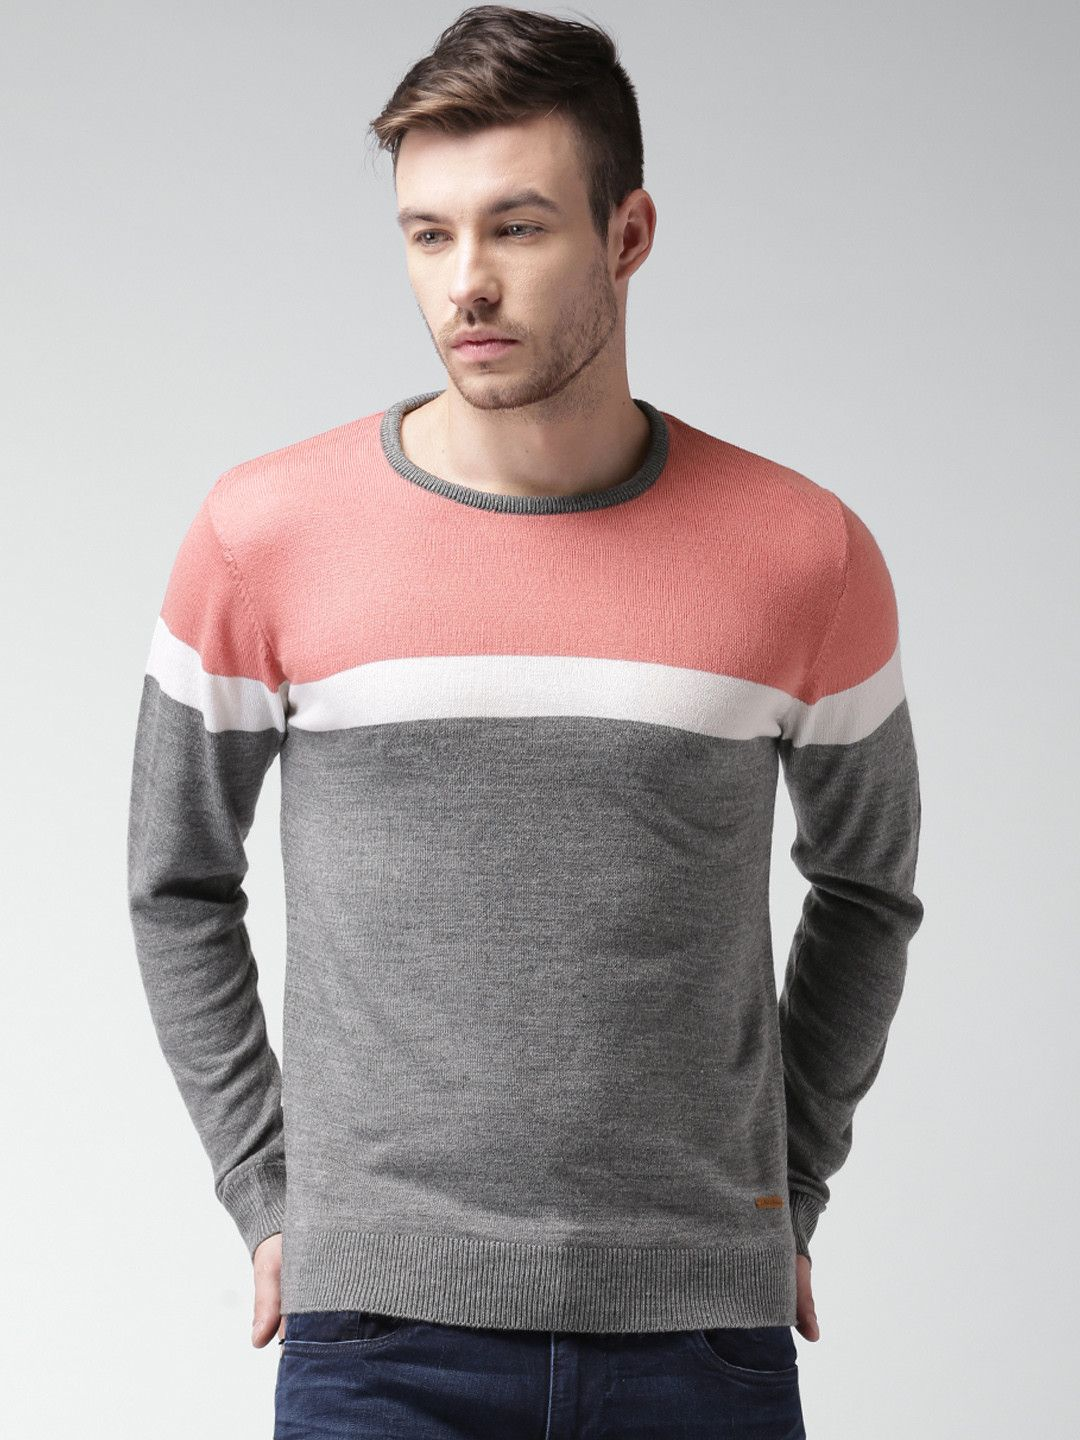 Mast & Harbour Pink & Grey Printed Acrylic Sweater | Men's T-Shirt ...